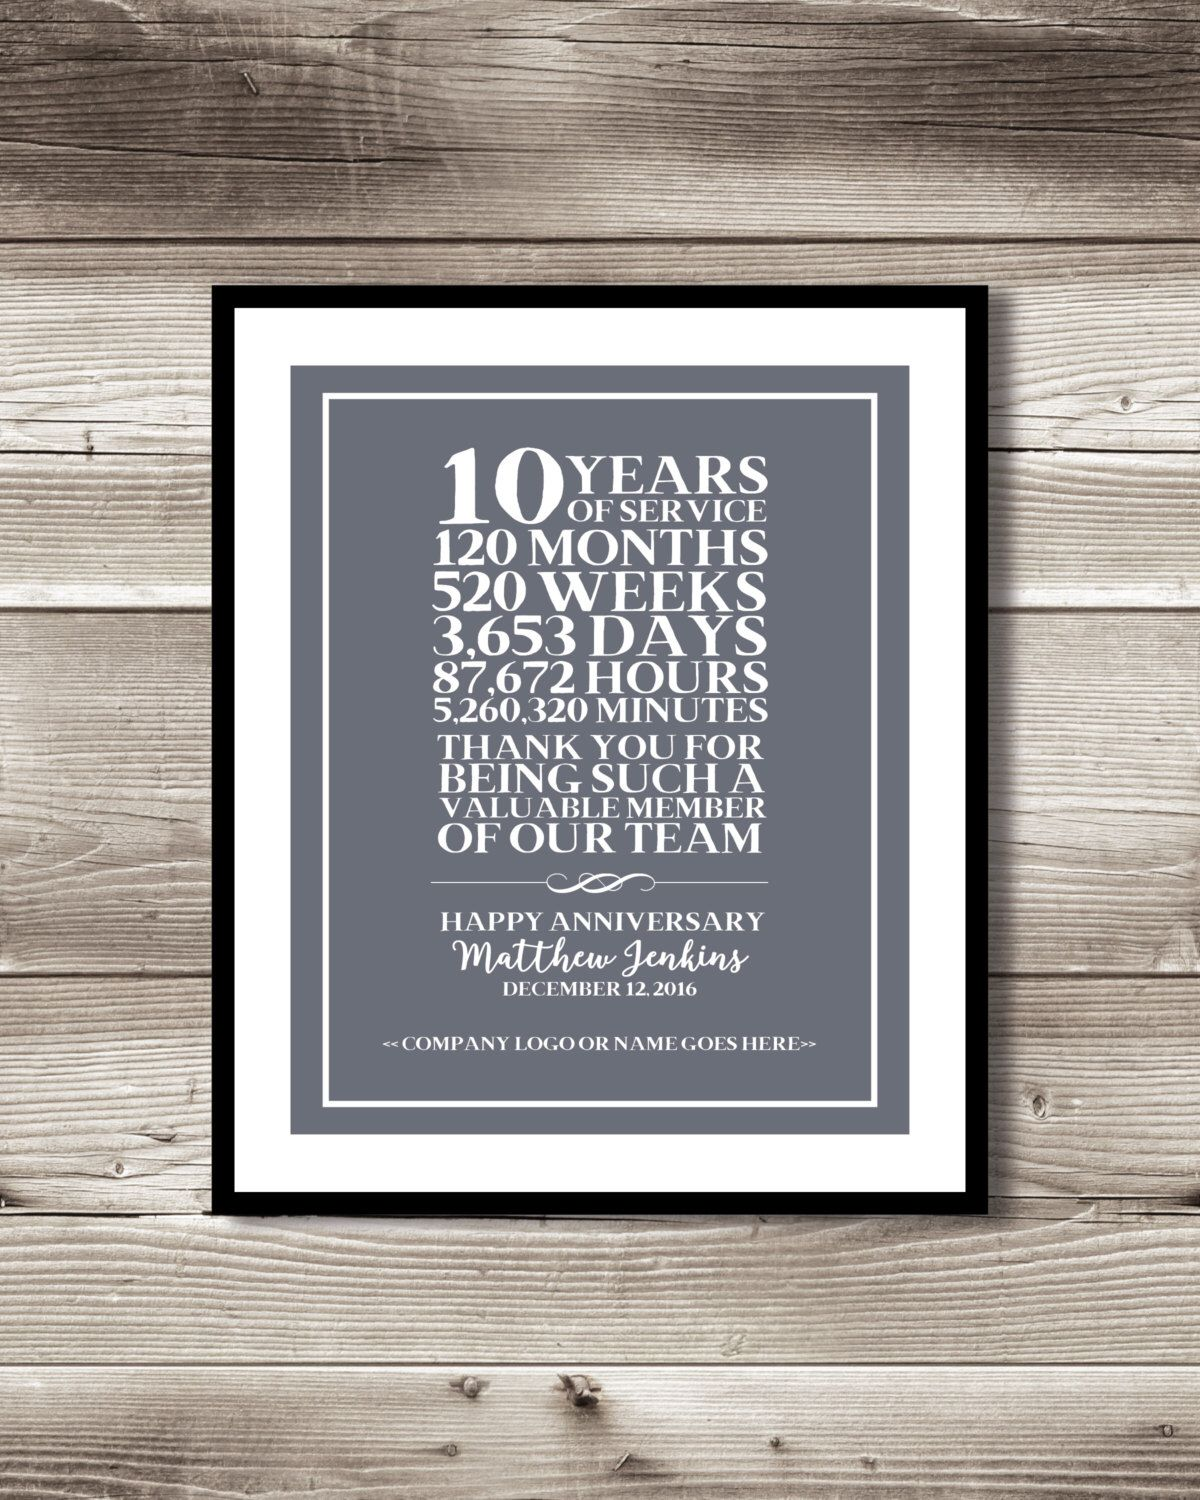 10 Year Work Anniversary Print Gift Idea Customizable Thank You Gift Years Of Service Employee Recognition Appreciation Gift Work Anniversary 25 Year Anniversary 20 Year Anniversary Gifts